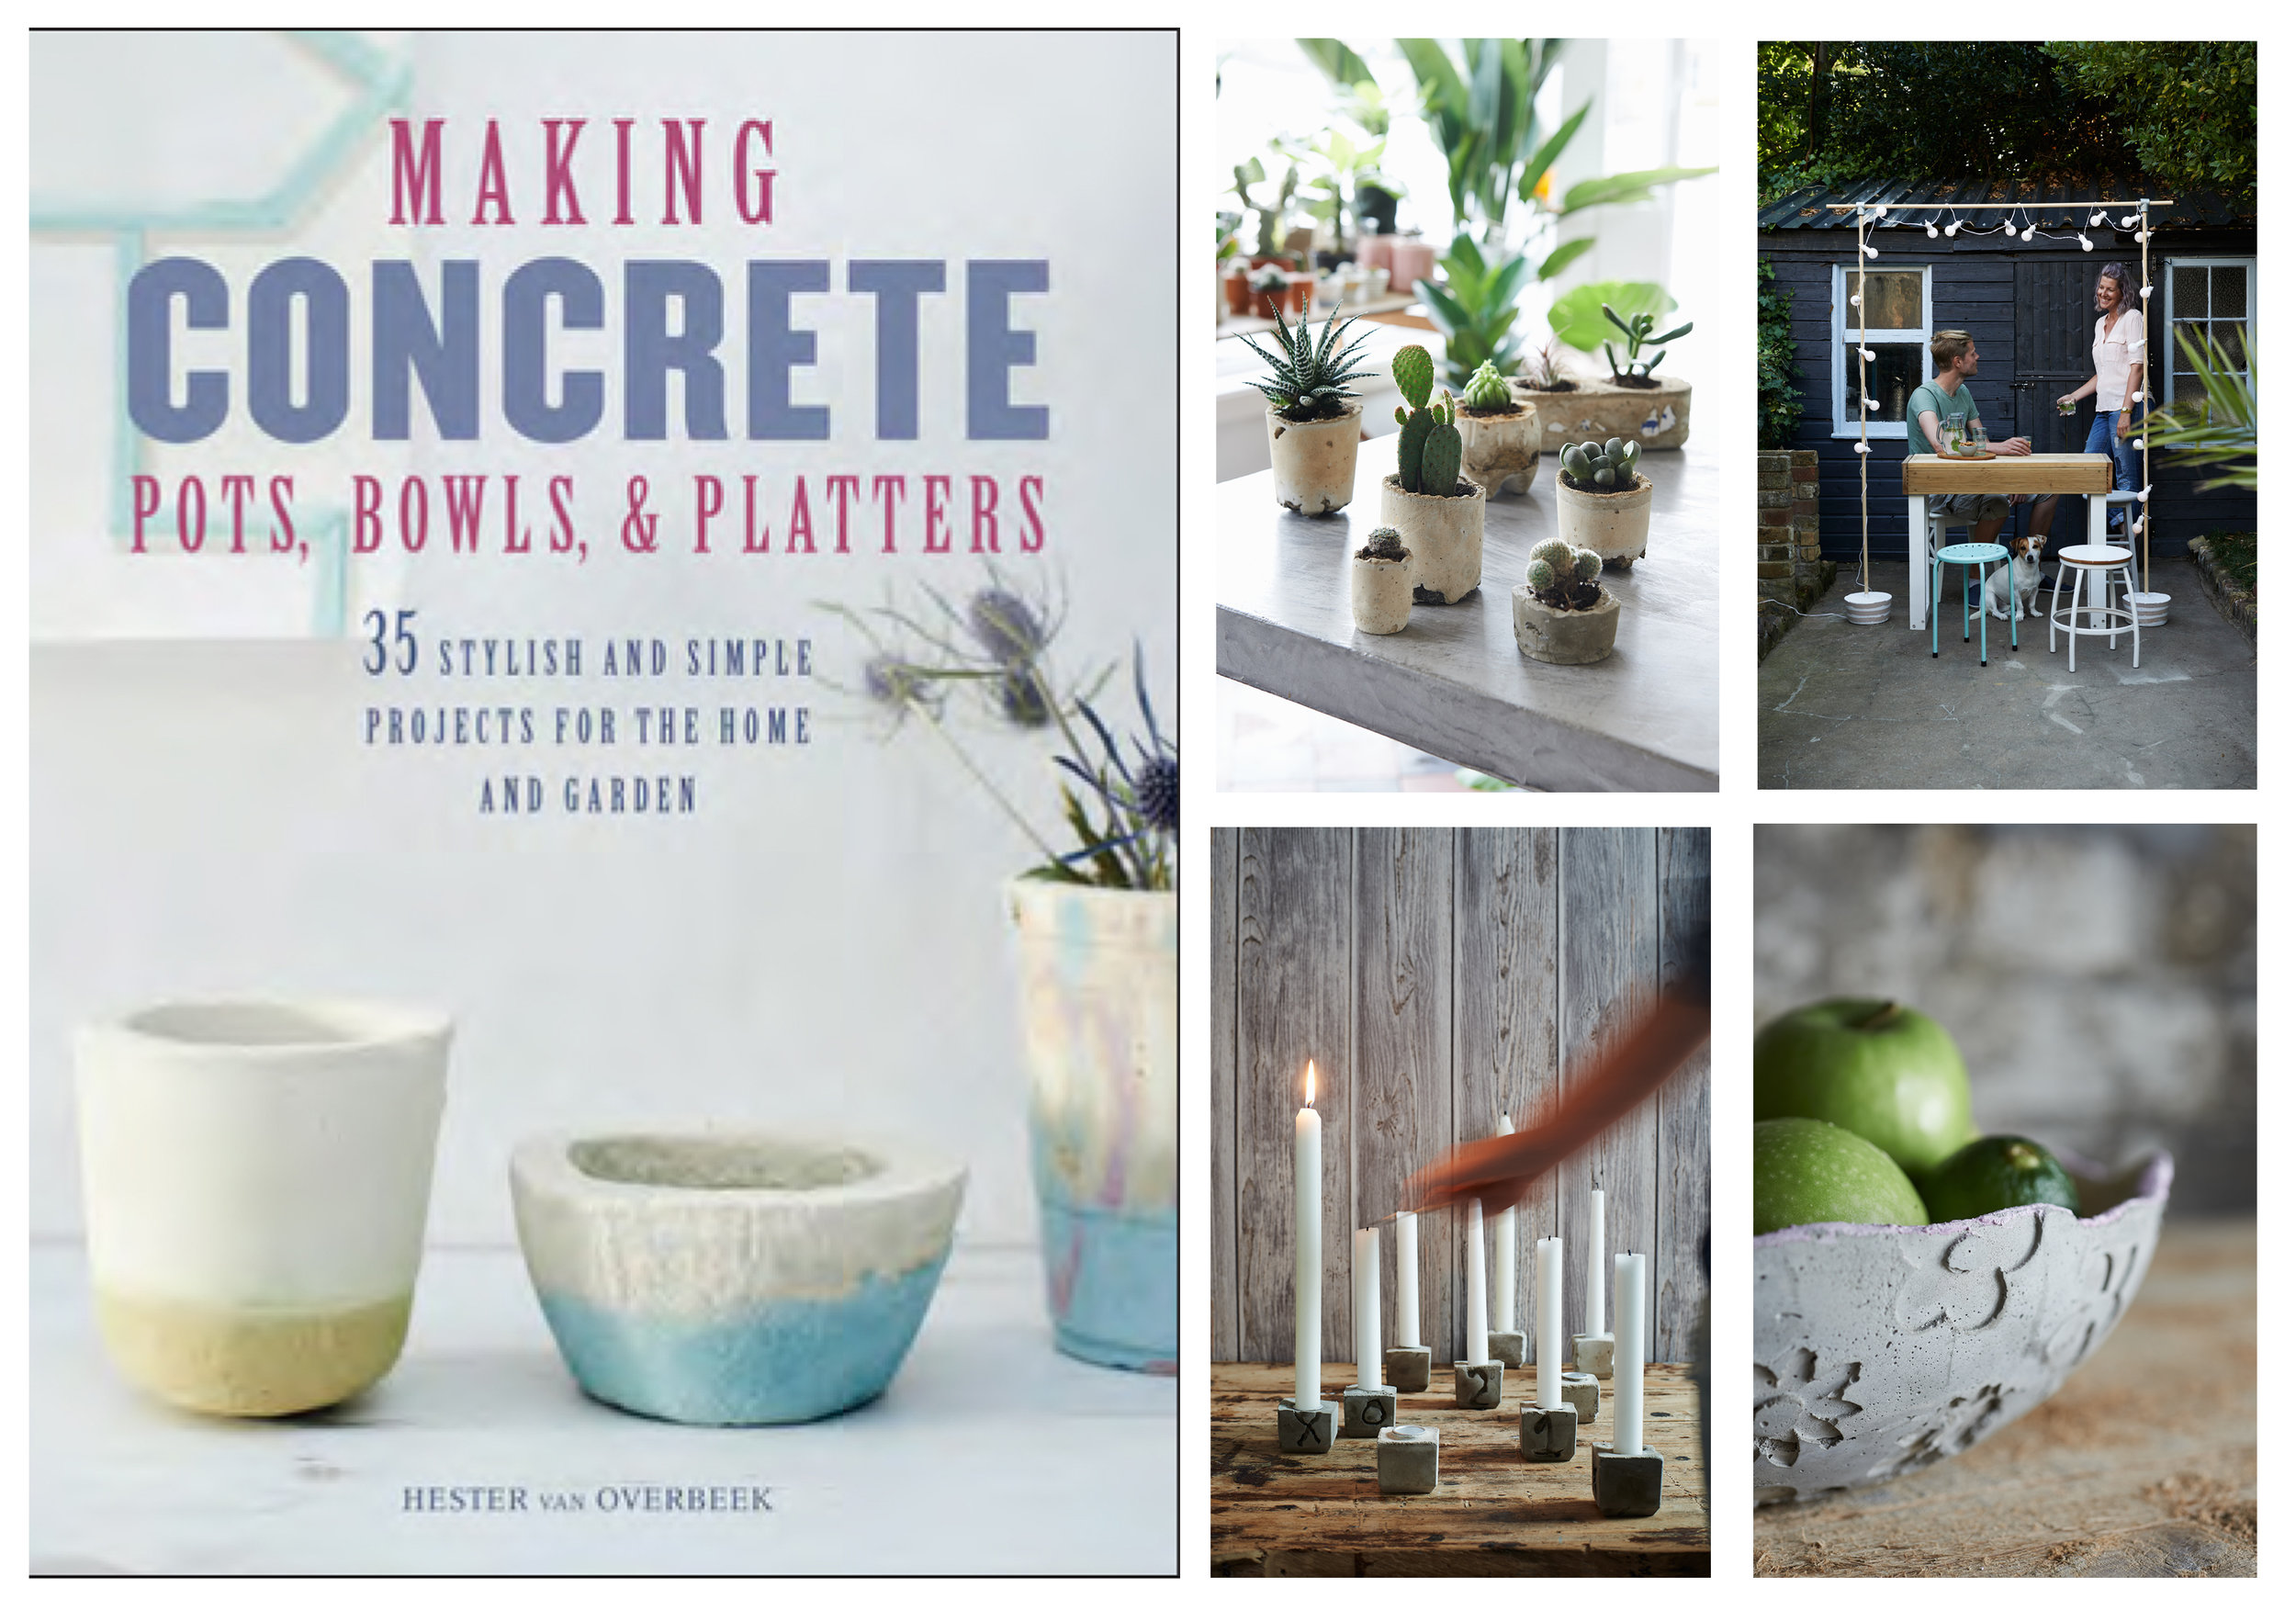 Making concrete pots, bowls & platters got published February 2017. - It's available to purchase in your local book store or online (ISBN 978-178294140)